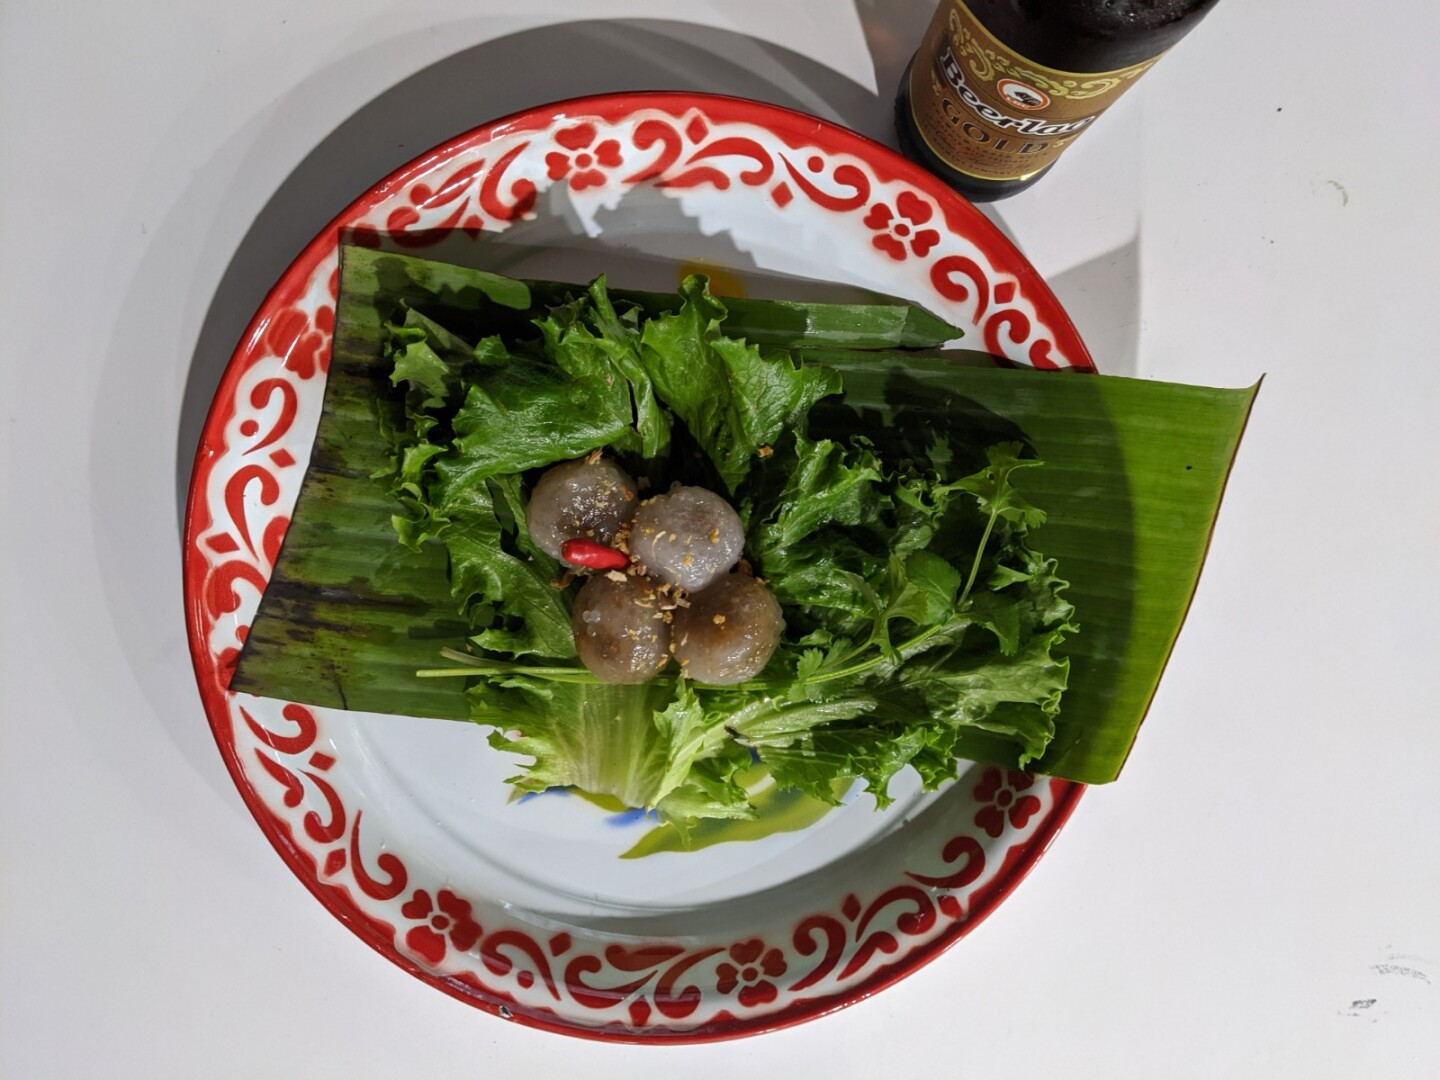 A plate of sakoo yat sai, tapioca dumplings filled with a savory filling and served with fresh vegetables. The dumplings are a light brown color and in the shape of four balls in the center of the plate. They sit on a bed of green lettuce and herbs.